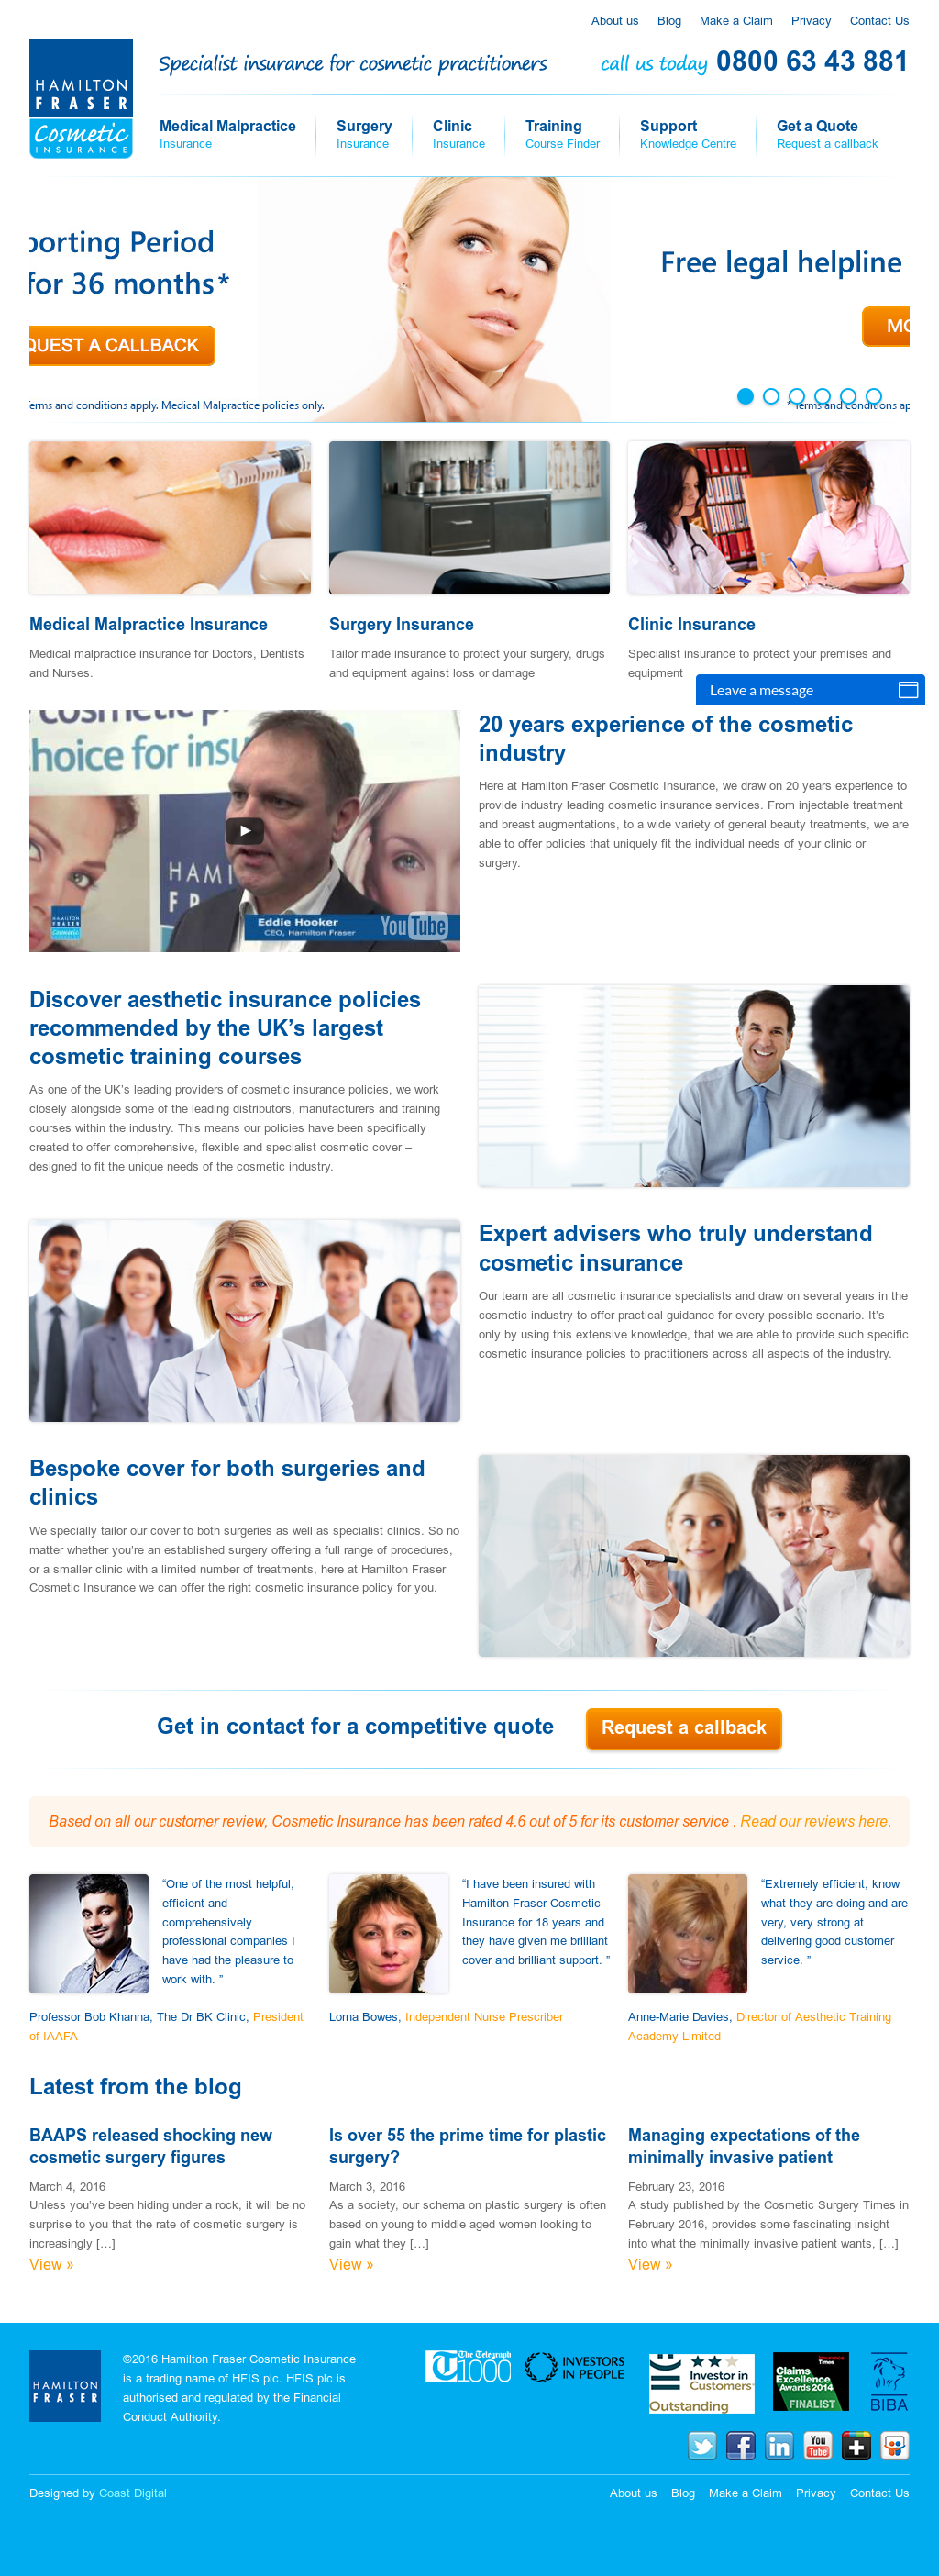 Cosmetic Insurance Competitors, Revenue and Employees